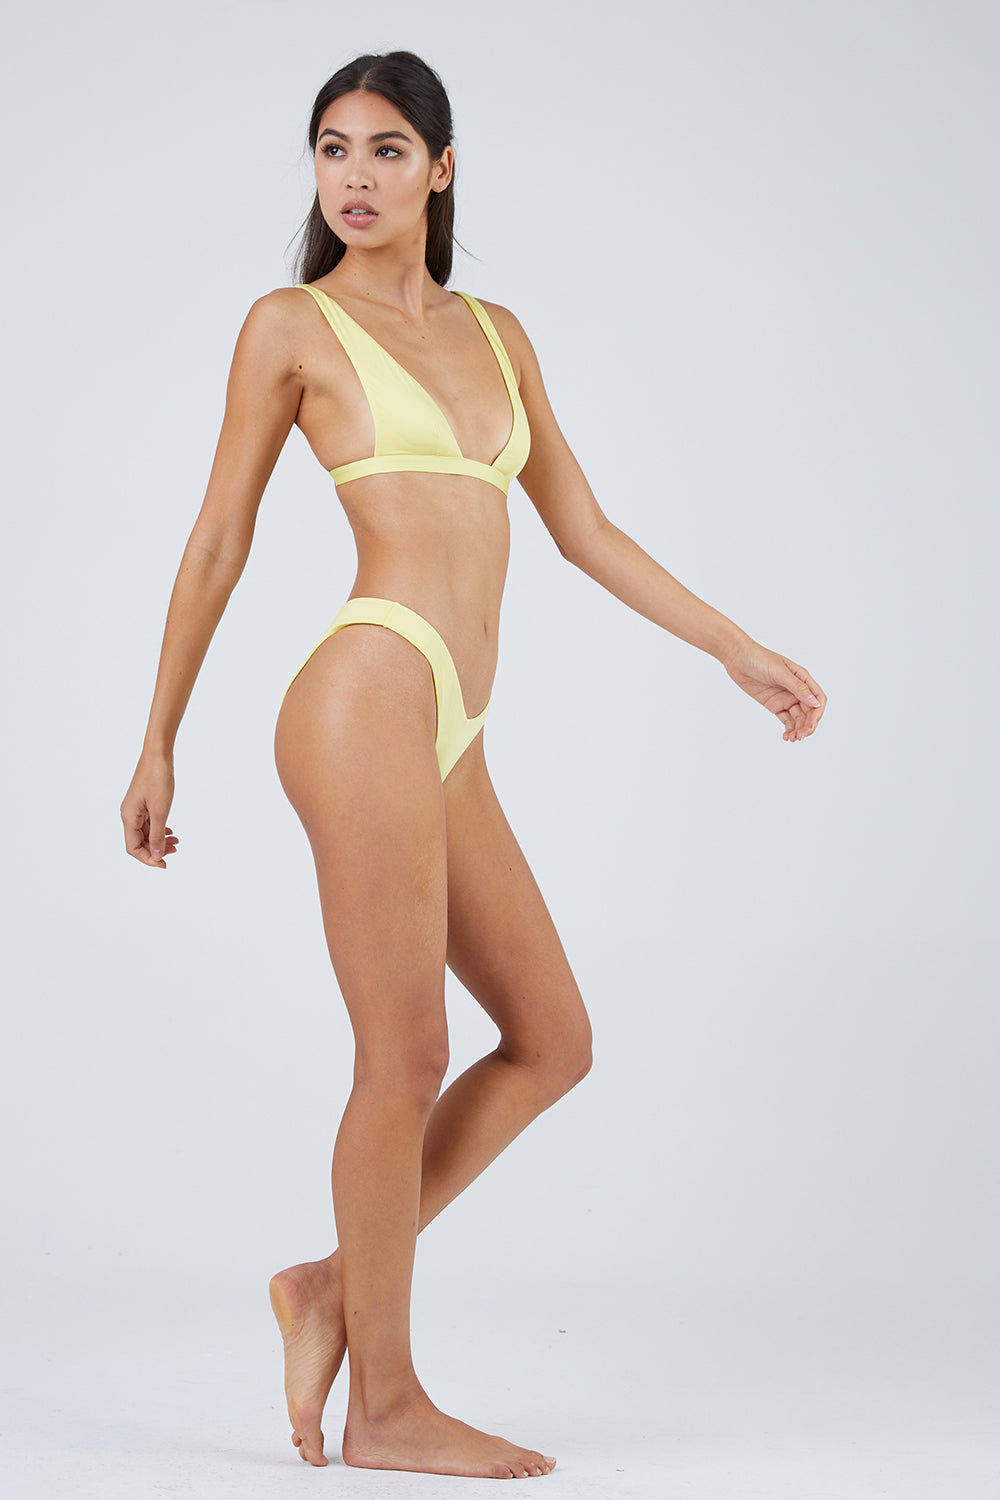 MONICA HANSEN BEACHWEAR Babe Watch Long Triangle Bikini Top - Yellow Bikini Top | Yellow| Monica Hansen Beachwear Babe Watch Long Triangle Bikini Top - Yellow Plunging U-neckline Long triangle top Small nickel colored metal clasp in back Double fabric on the inside instead of lining Italian fabric 85% Nylon 15% Elastane Manufactured in Italy Hand wash cold. Side View